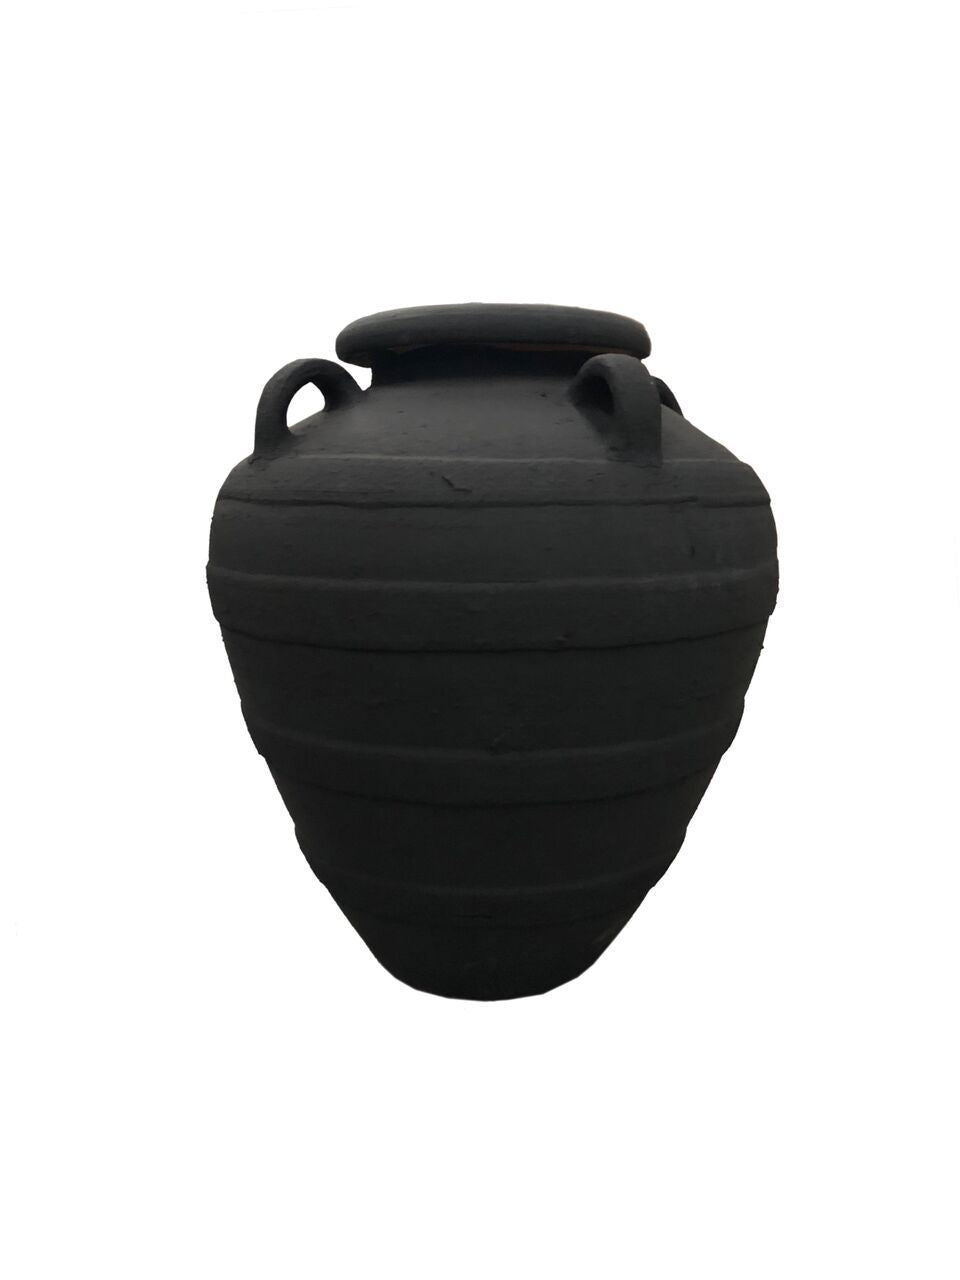 Pot With Handles & Stripes - Black